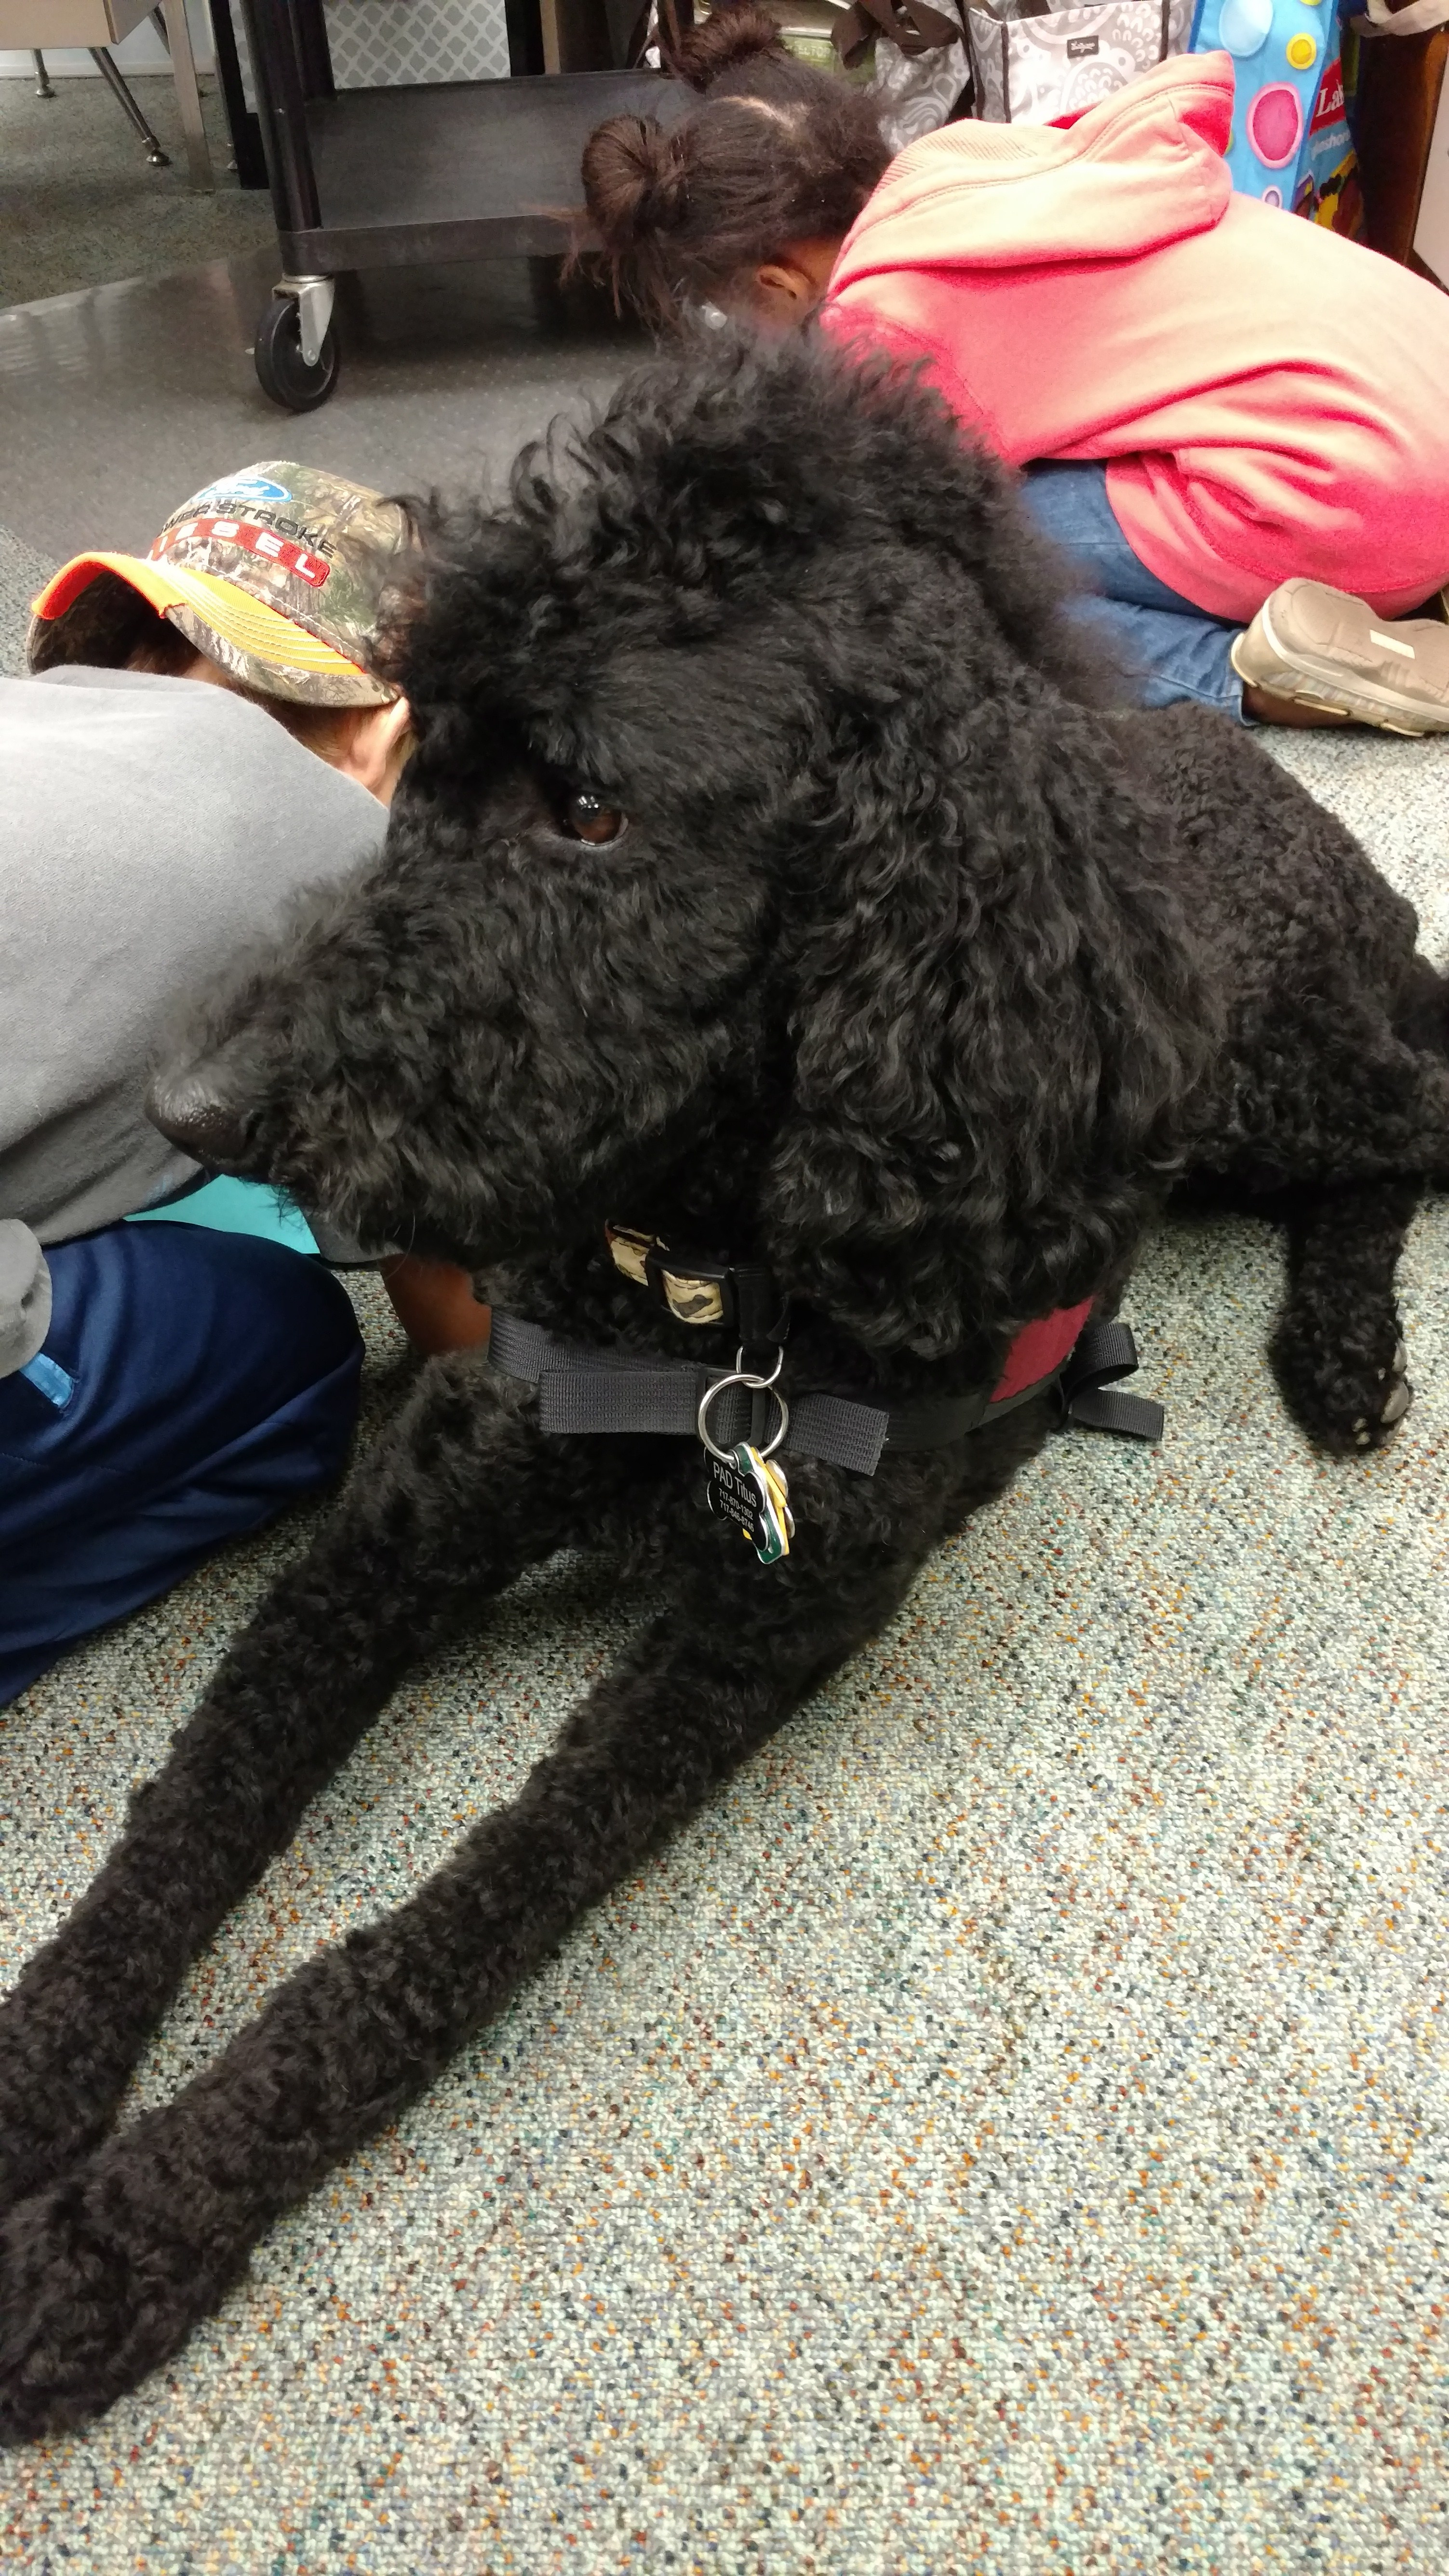 Titus, our service dog